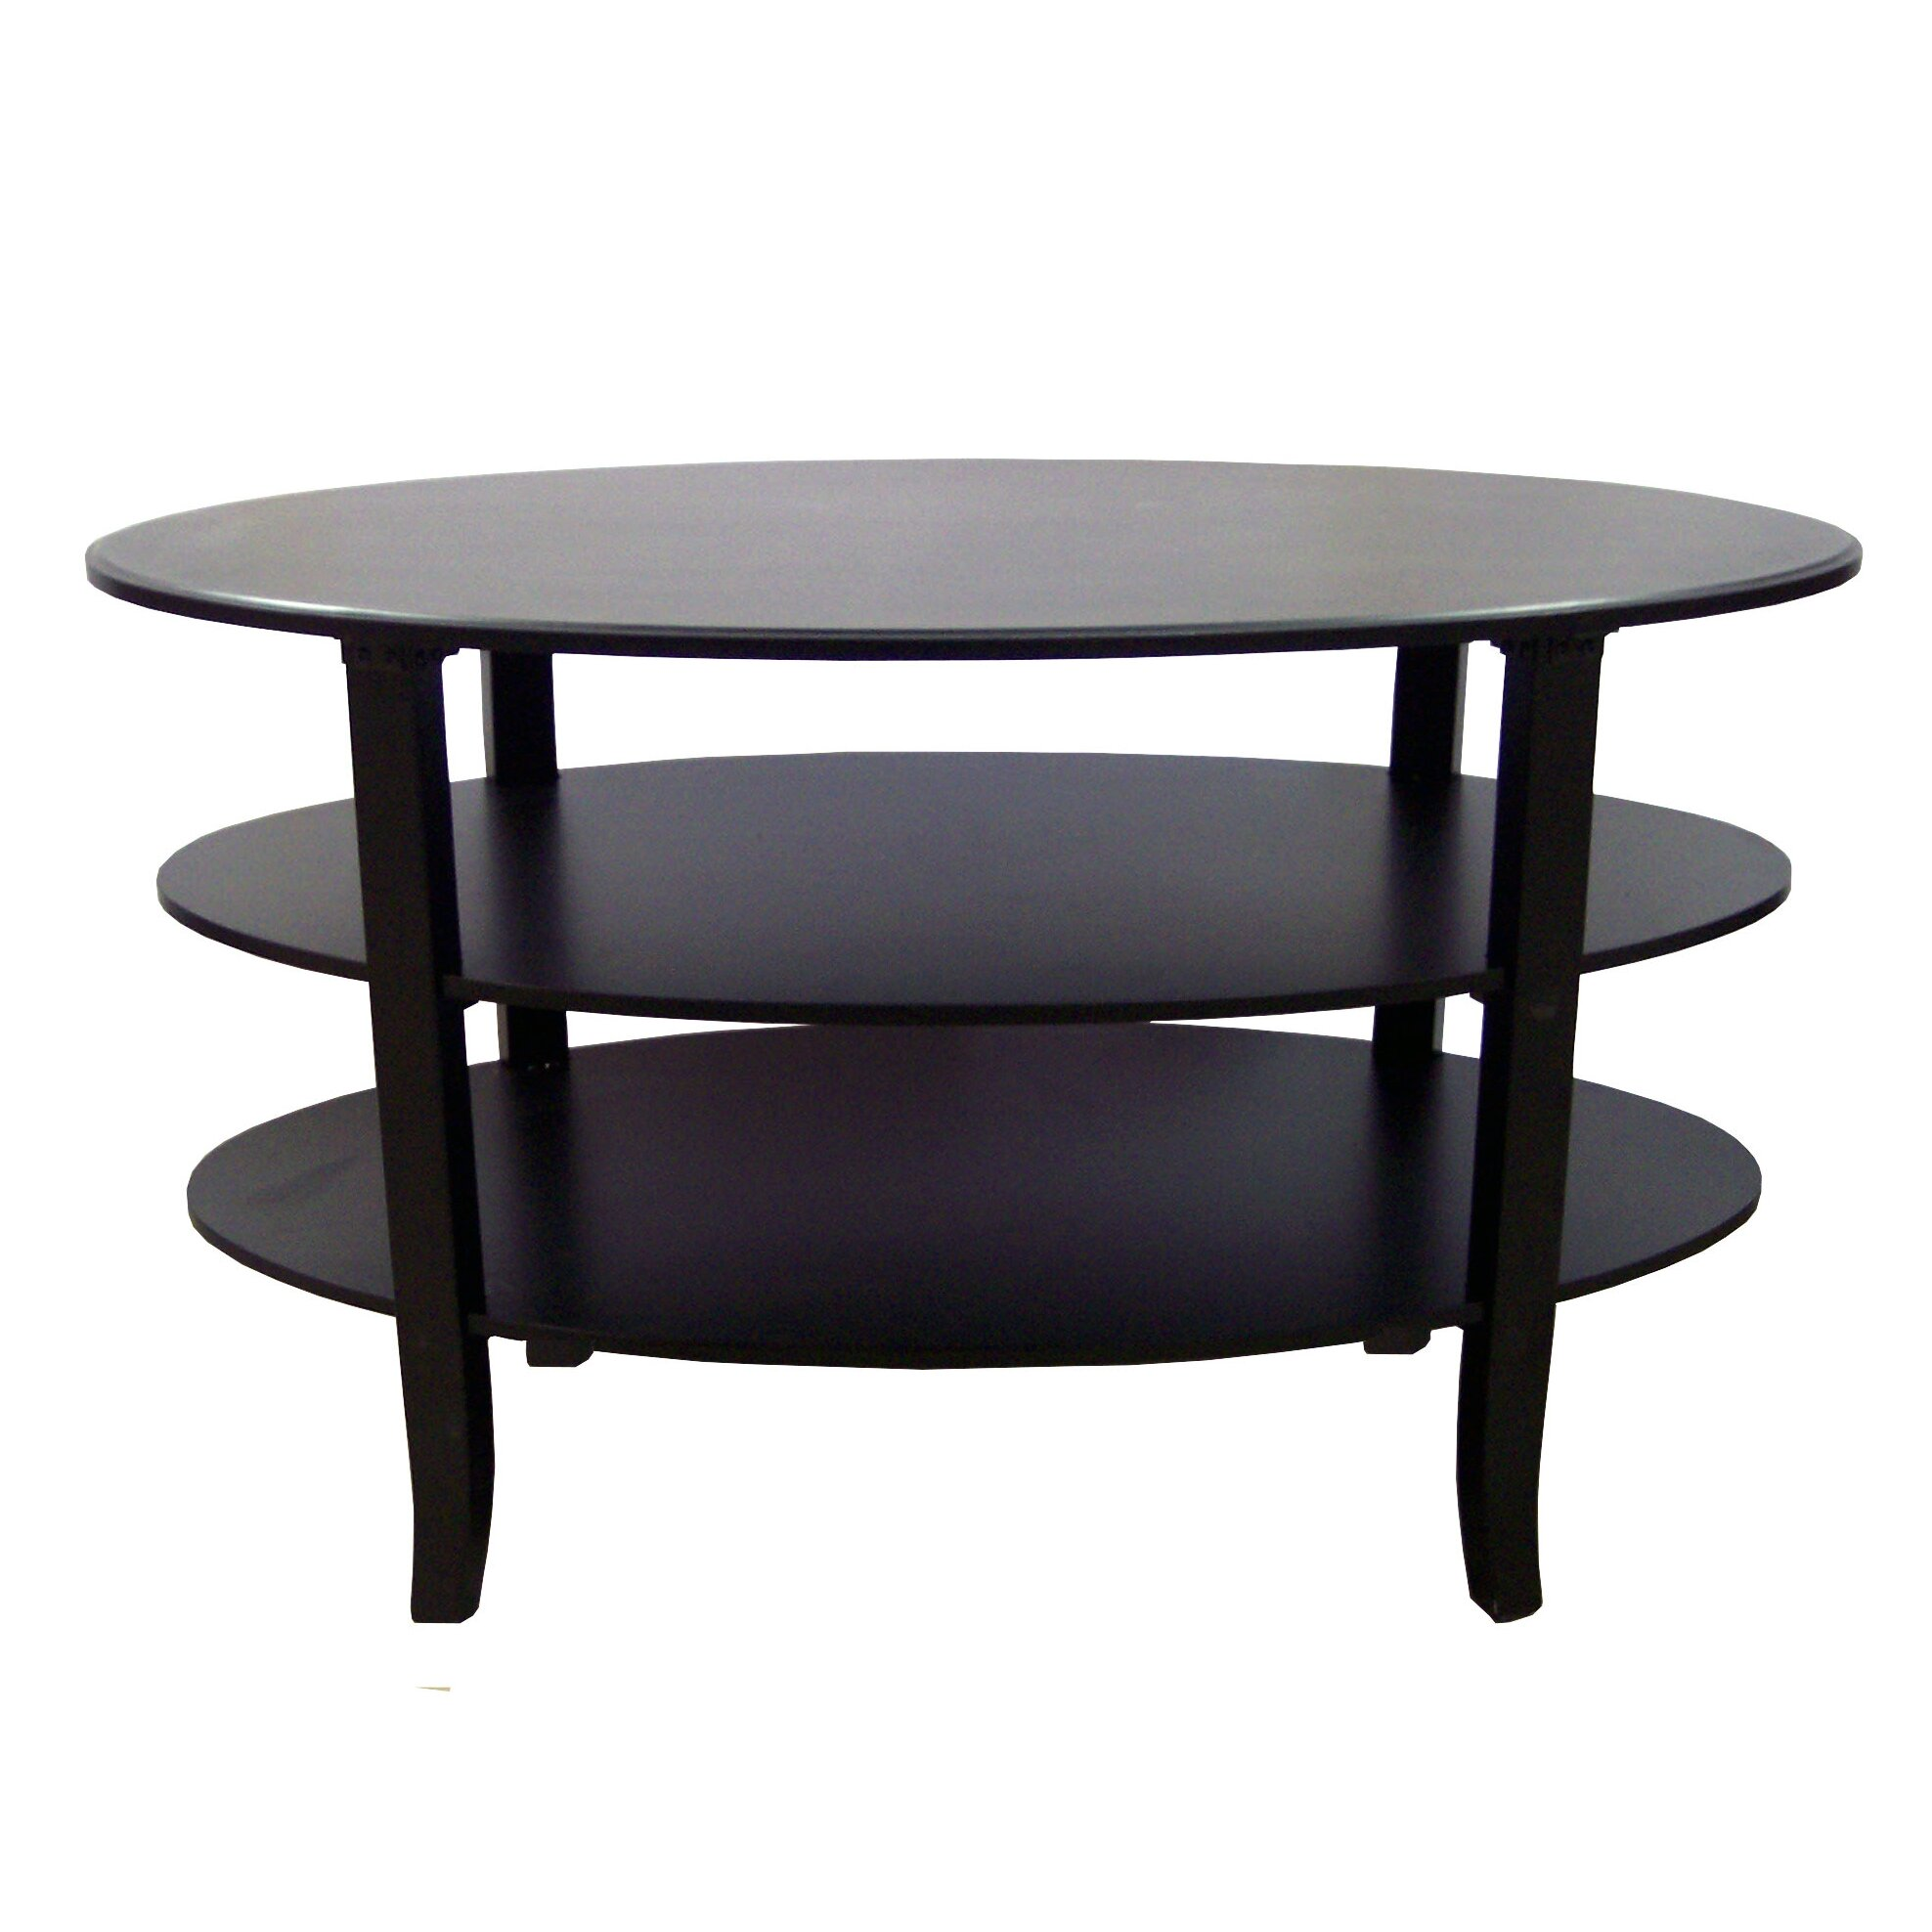 Kitchen Table London Review Tms London 3 Tier Coffee Table Reviews Wayfair